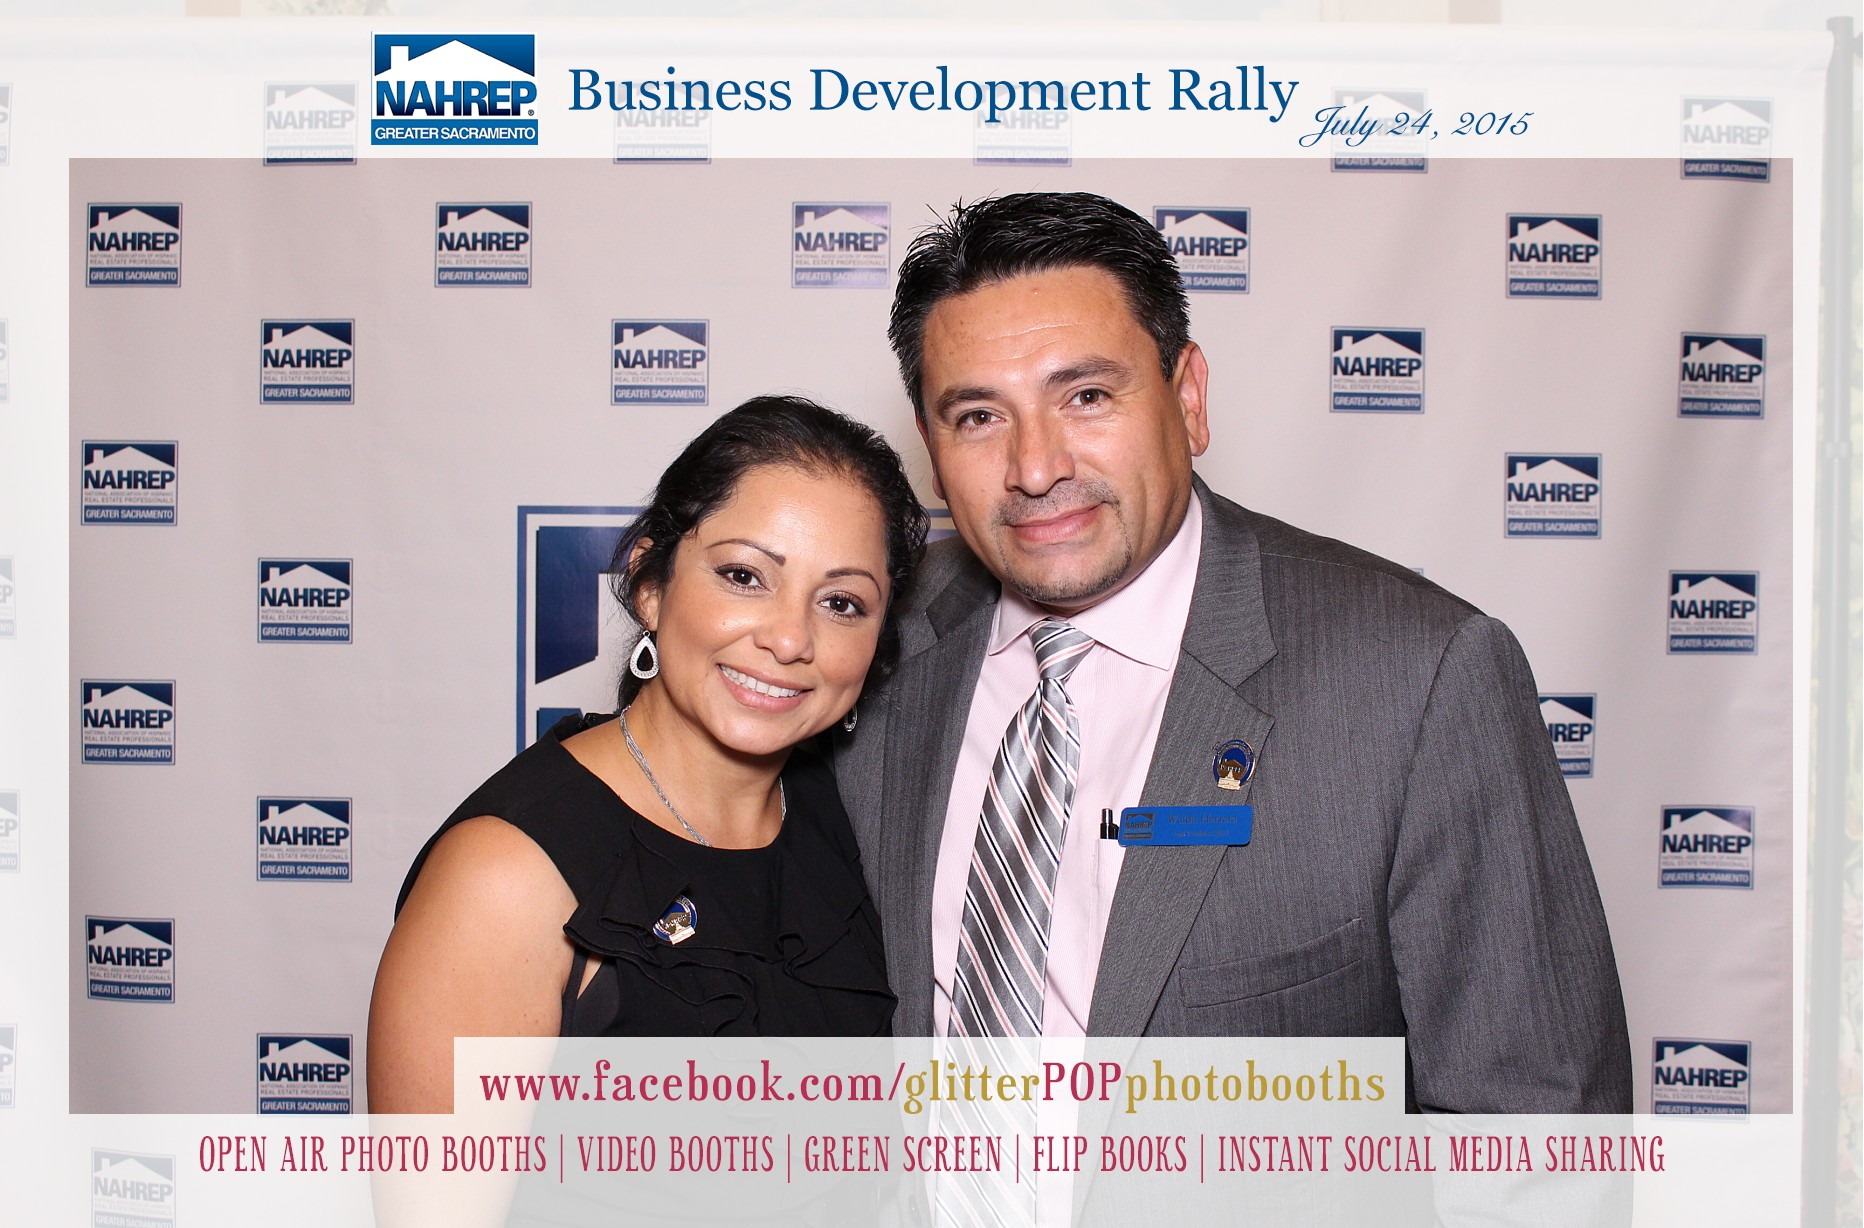 NAHREP Business rally photobooth